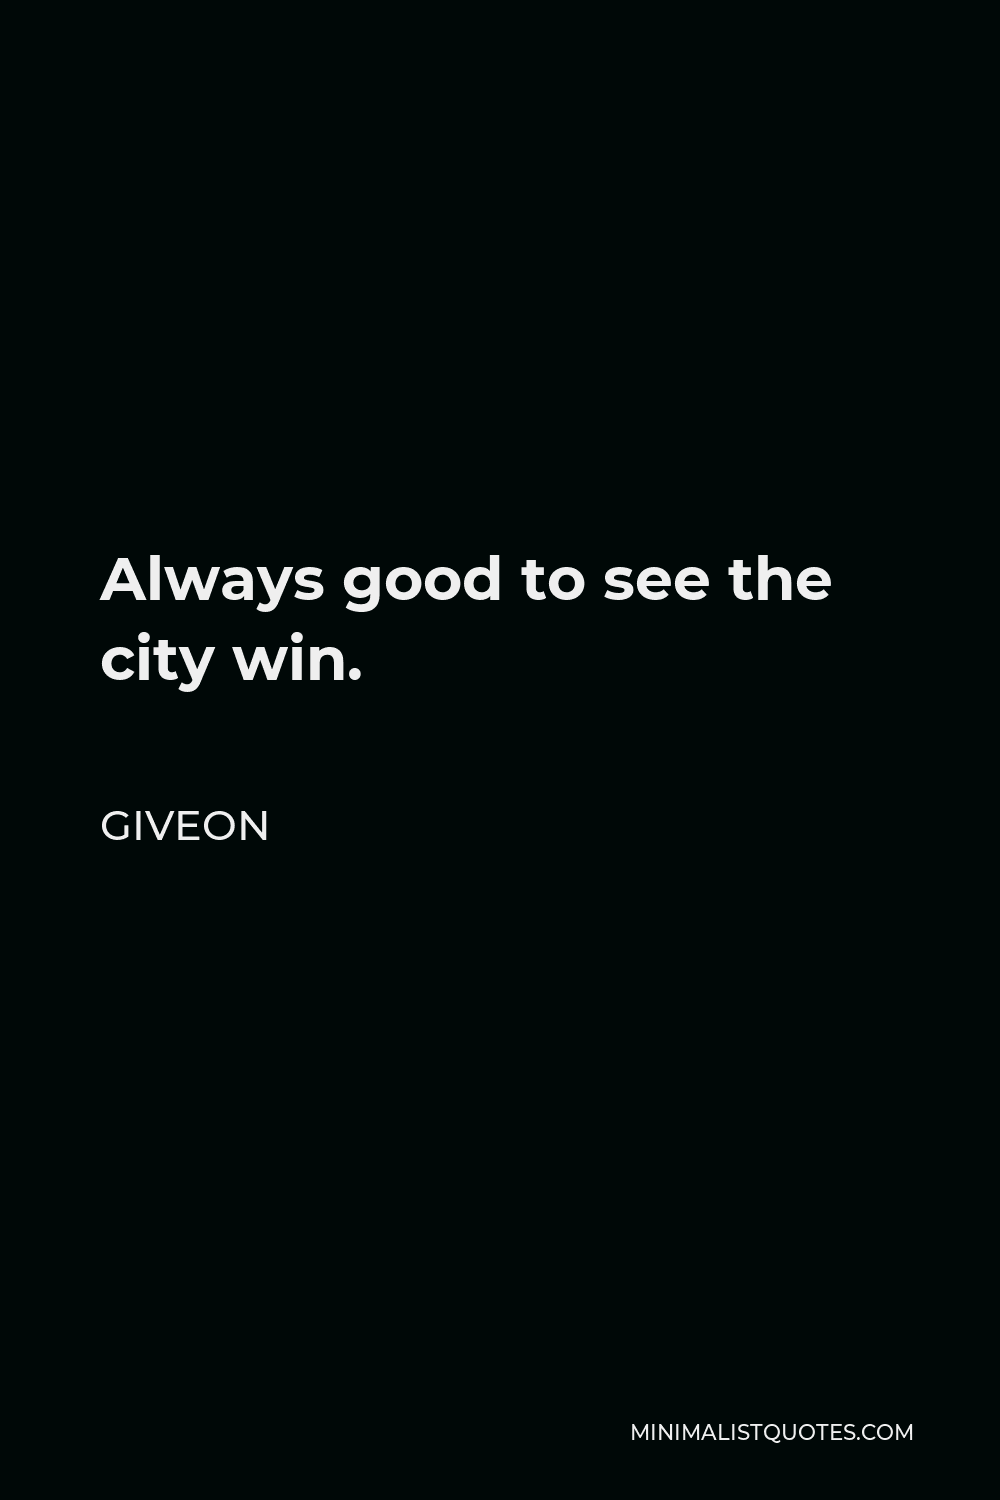 Giveon Quote - Always good to see the city win.